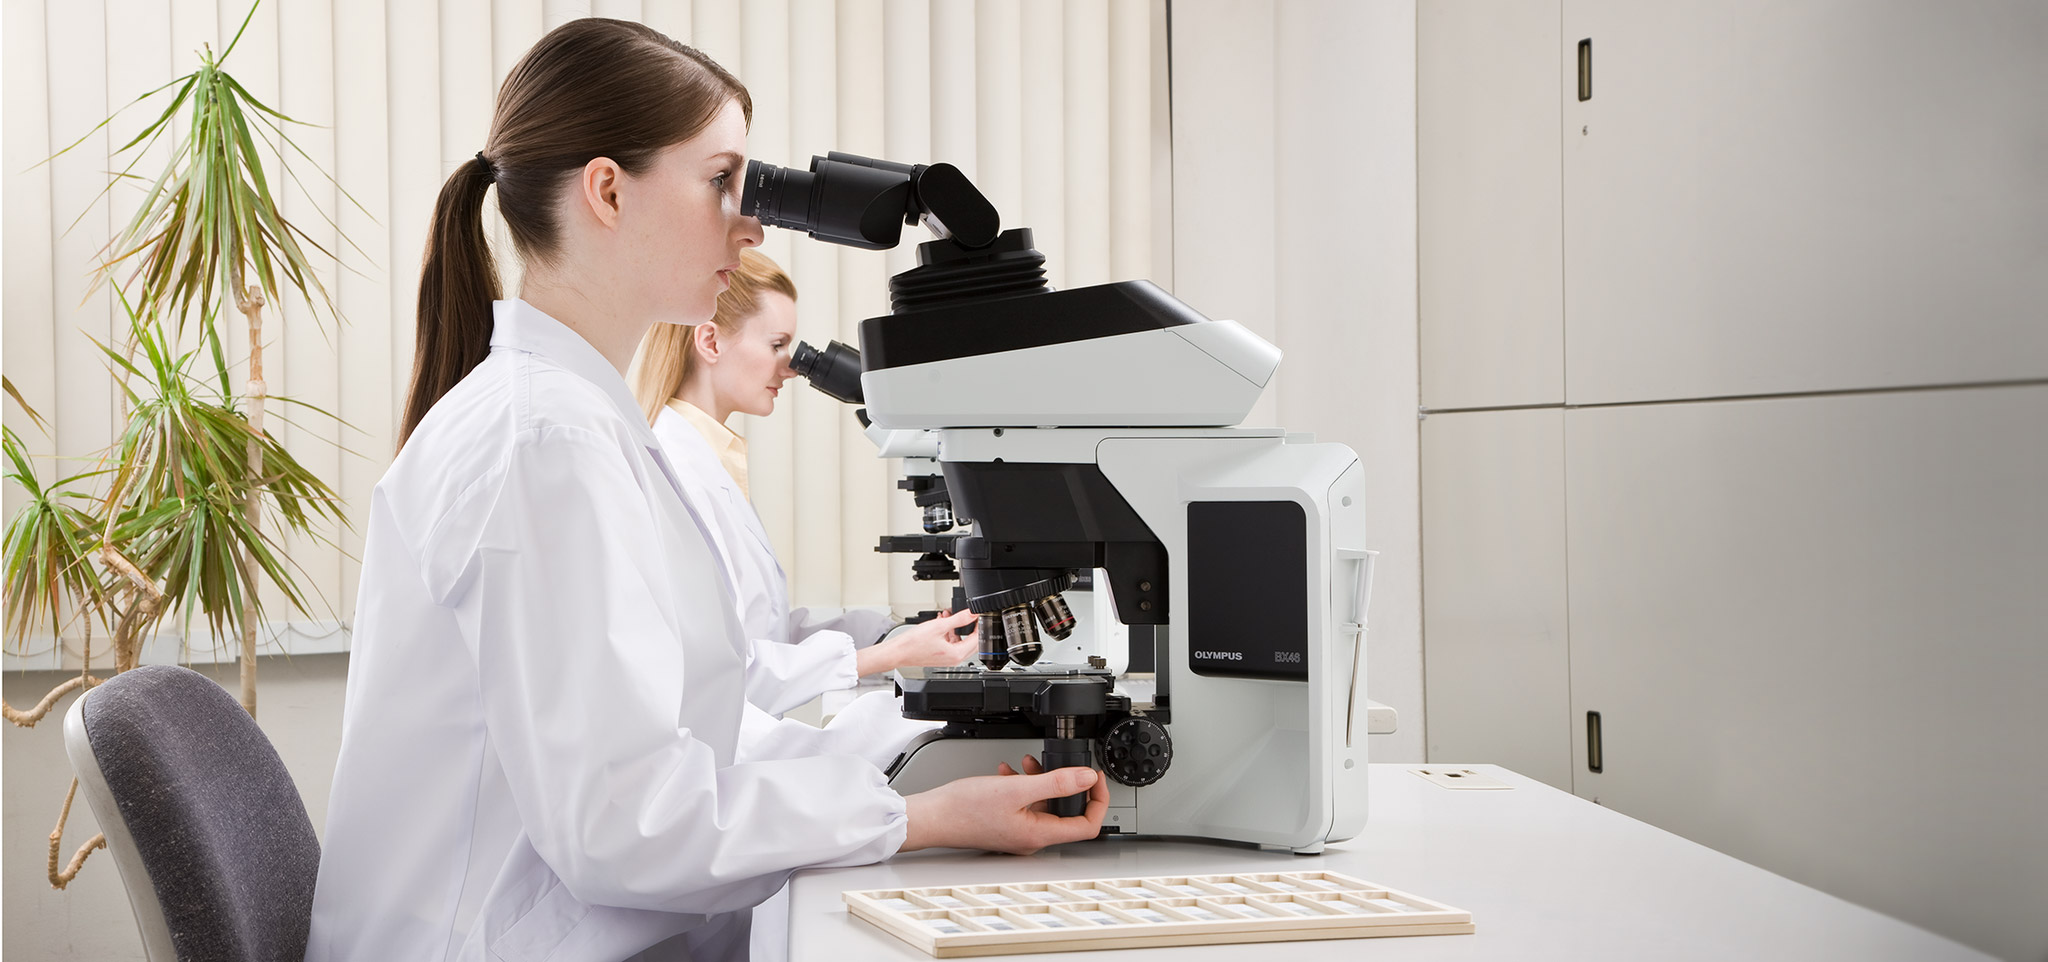 Microscopic data collection is facilitated via LABCAT's Pathology Module